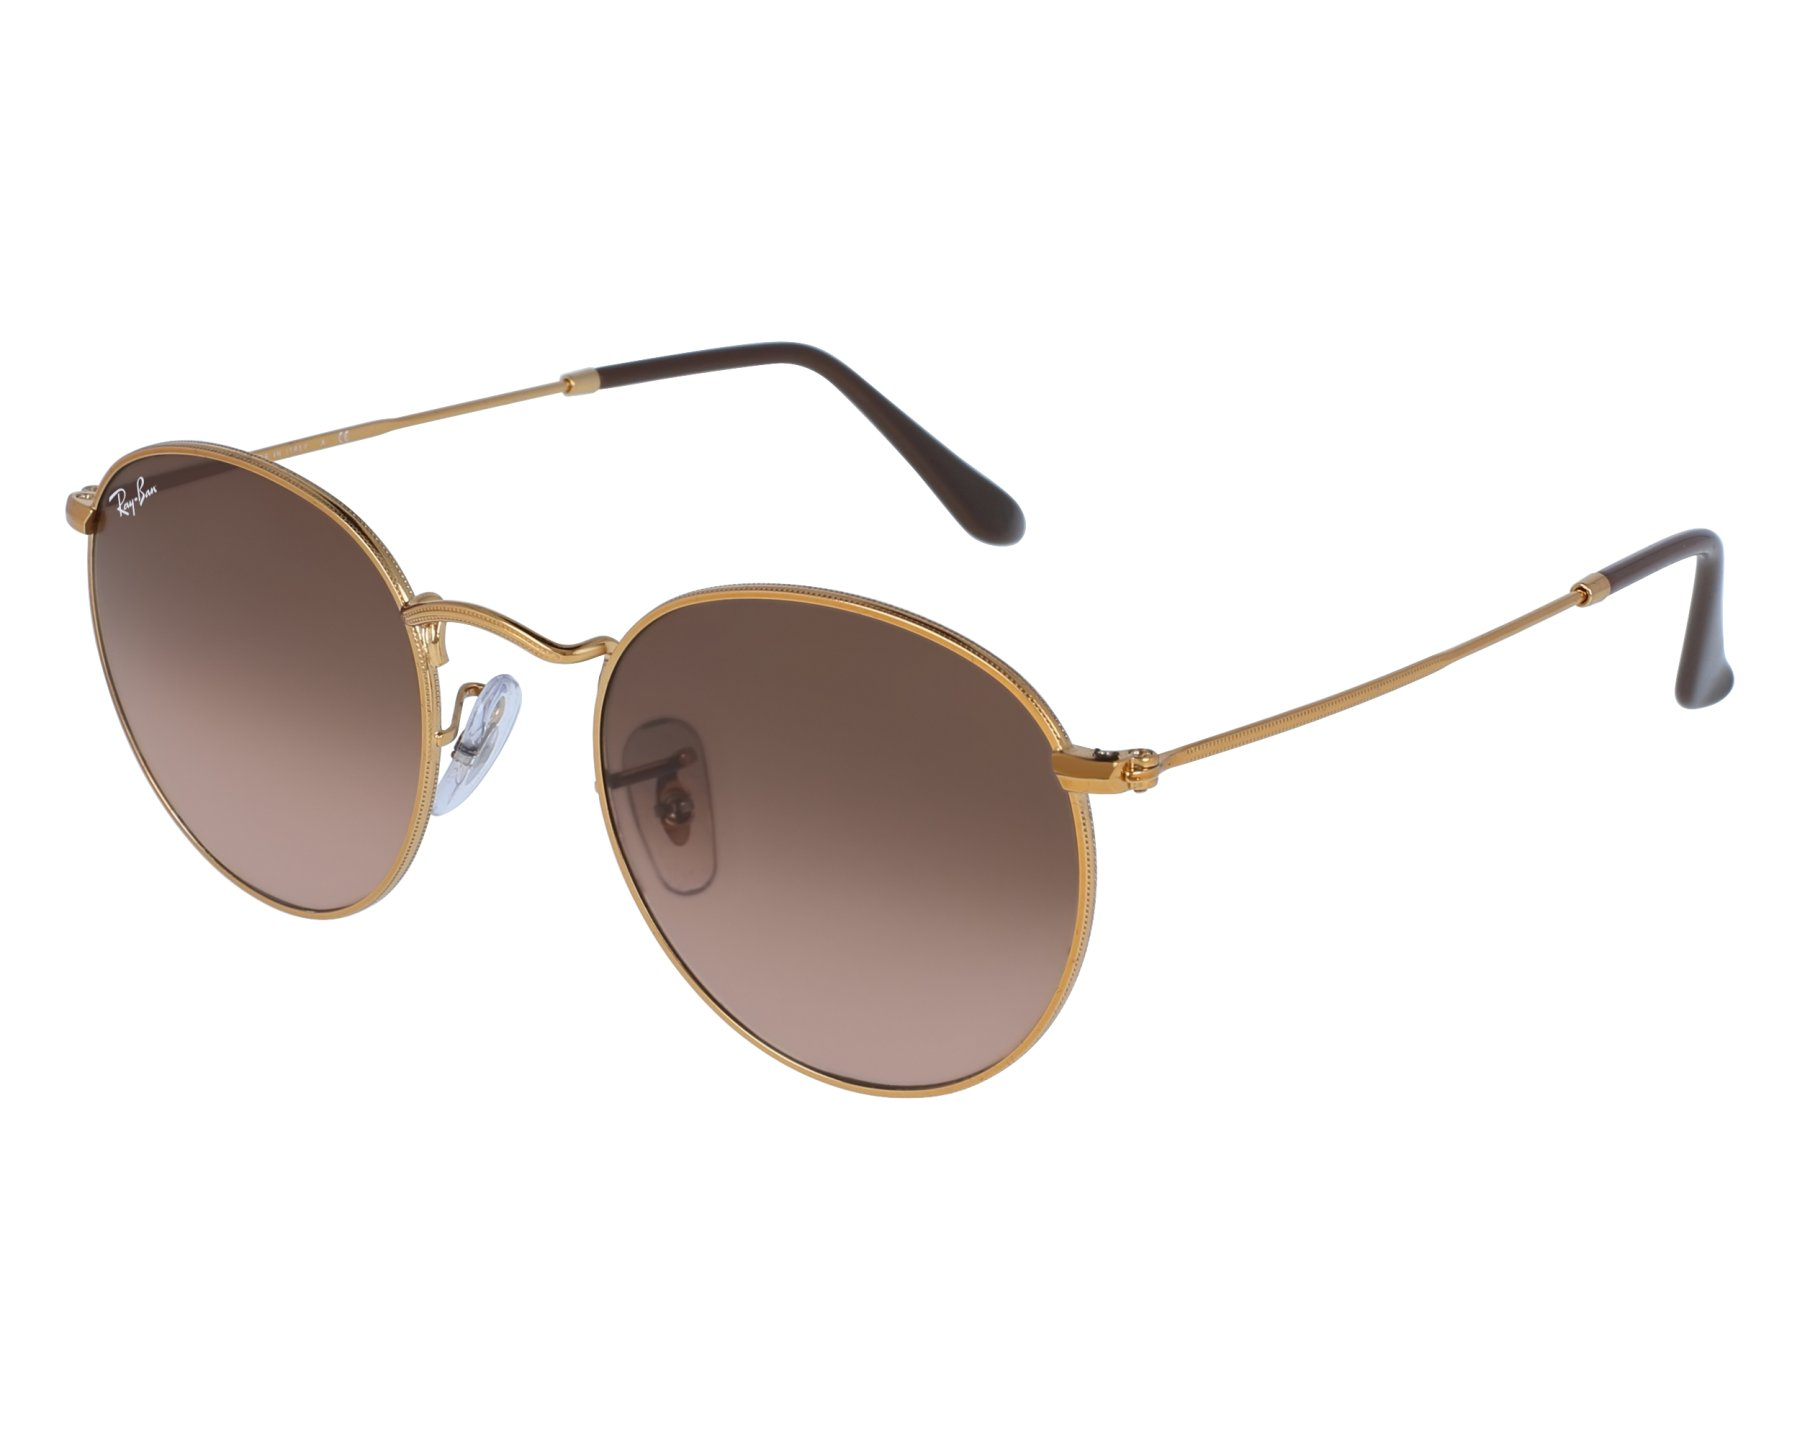 d1aa44ea8e105 Sunglasses Ray-Ban RB-3447 9001 A5 50-21 Gold front view